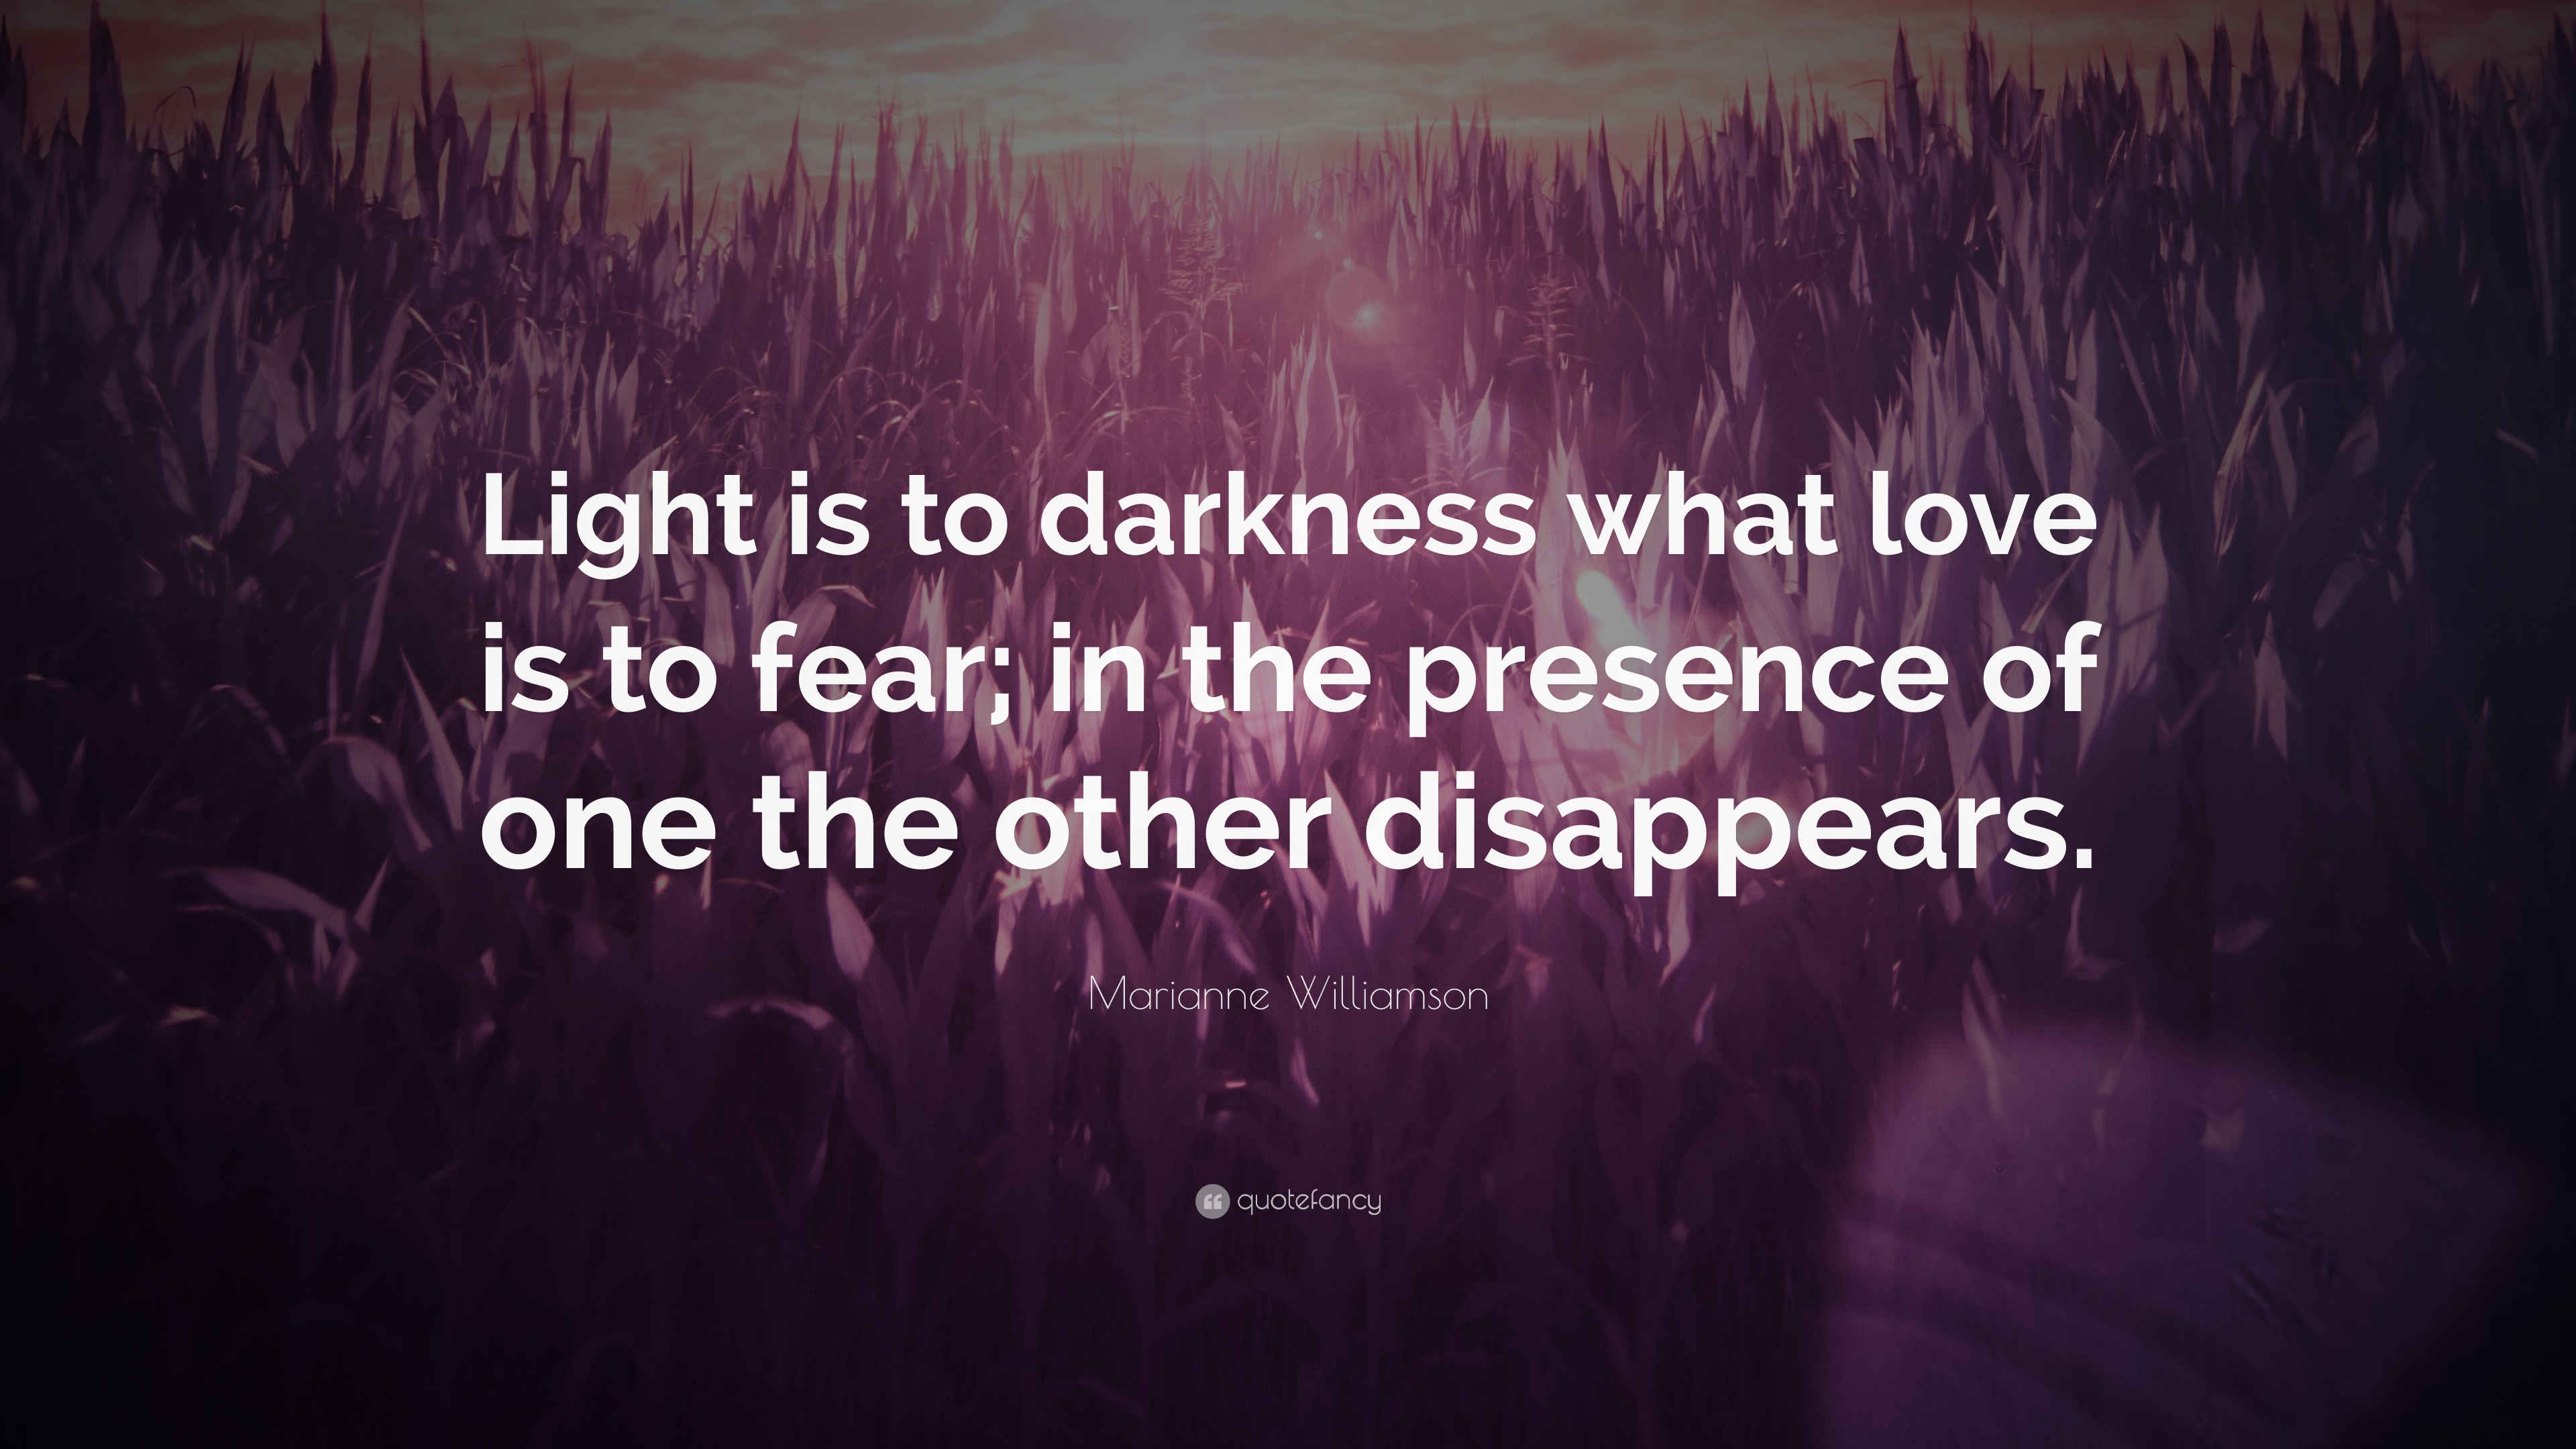 Marianne Williamson Quotes | Marianne Williamson Quote Light Is To Darkness What Love Is To